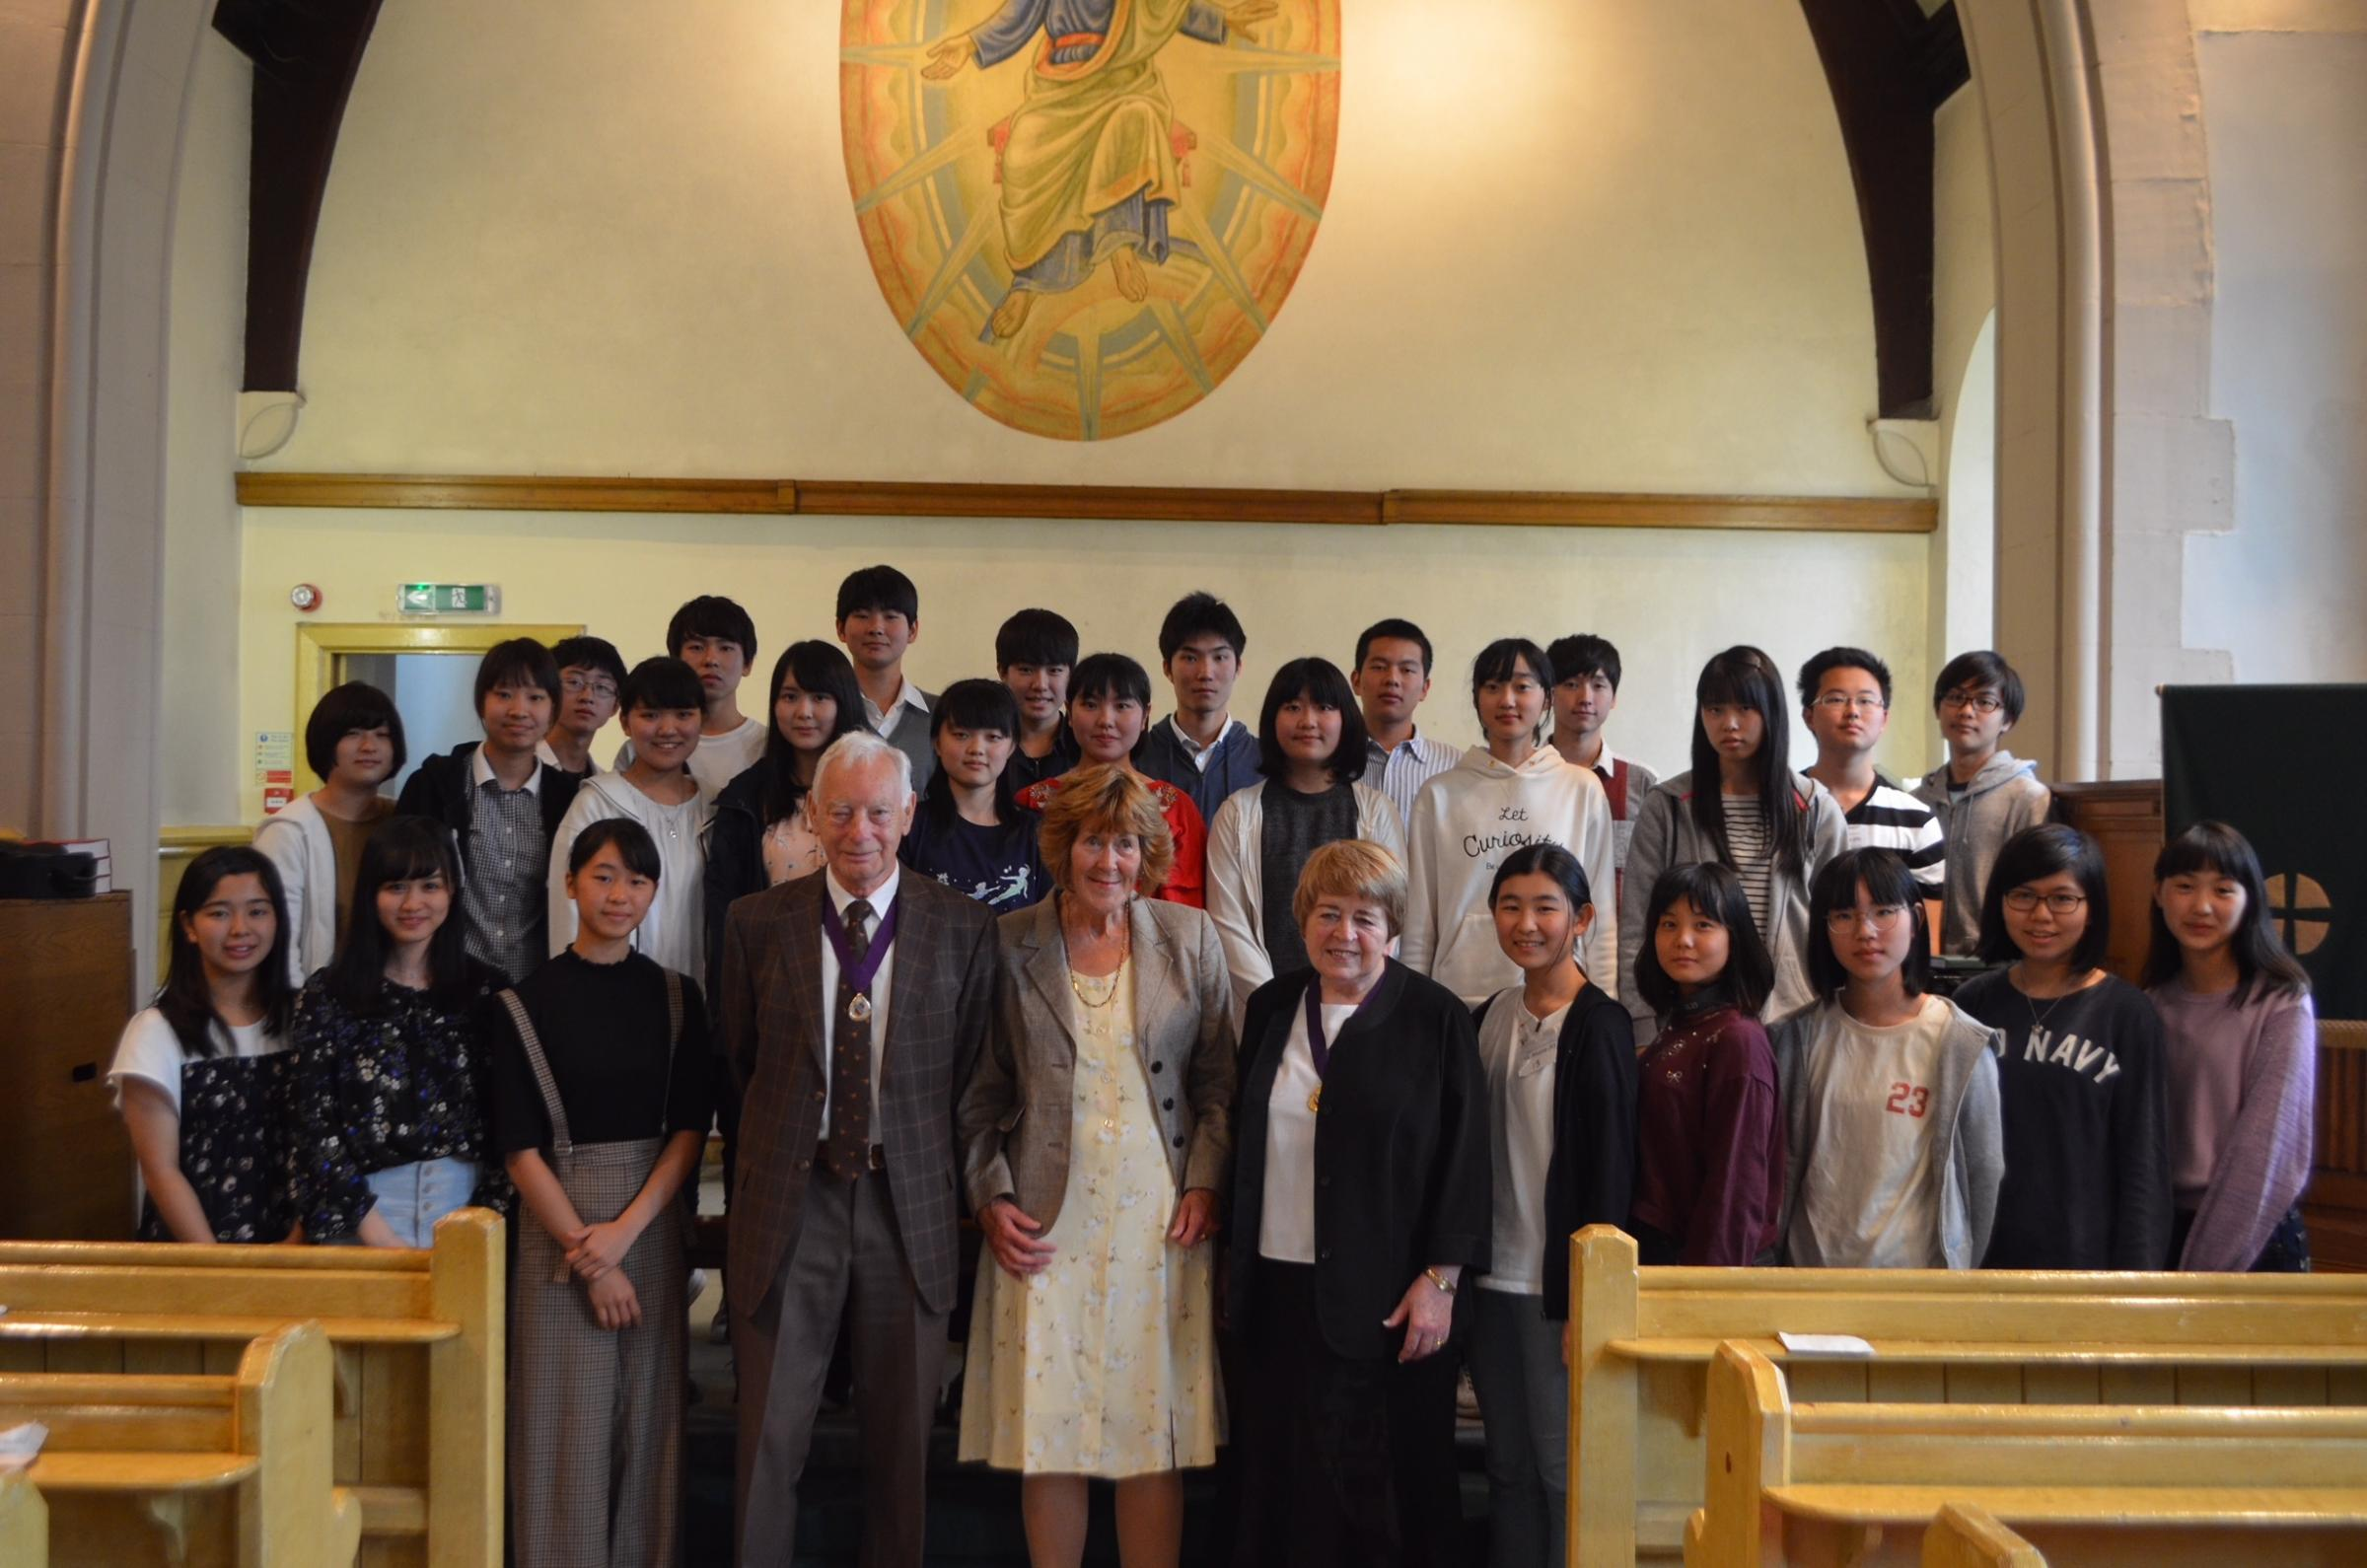 The Japanese students during their visit to St. John's alongside Jean Forsyth and Cllr. John Martin. PICTURE: Kumi Sanada